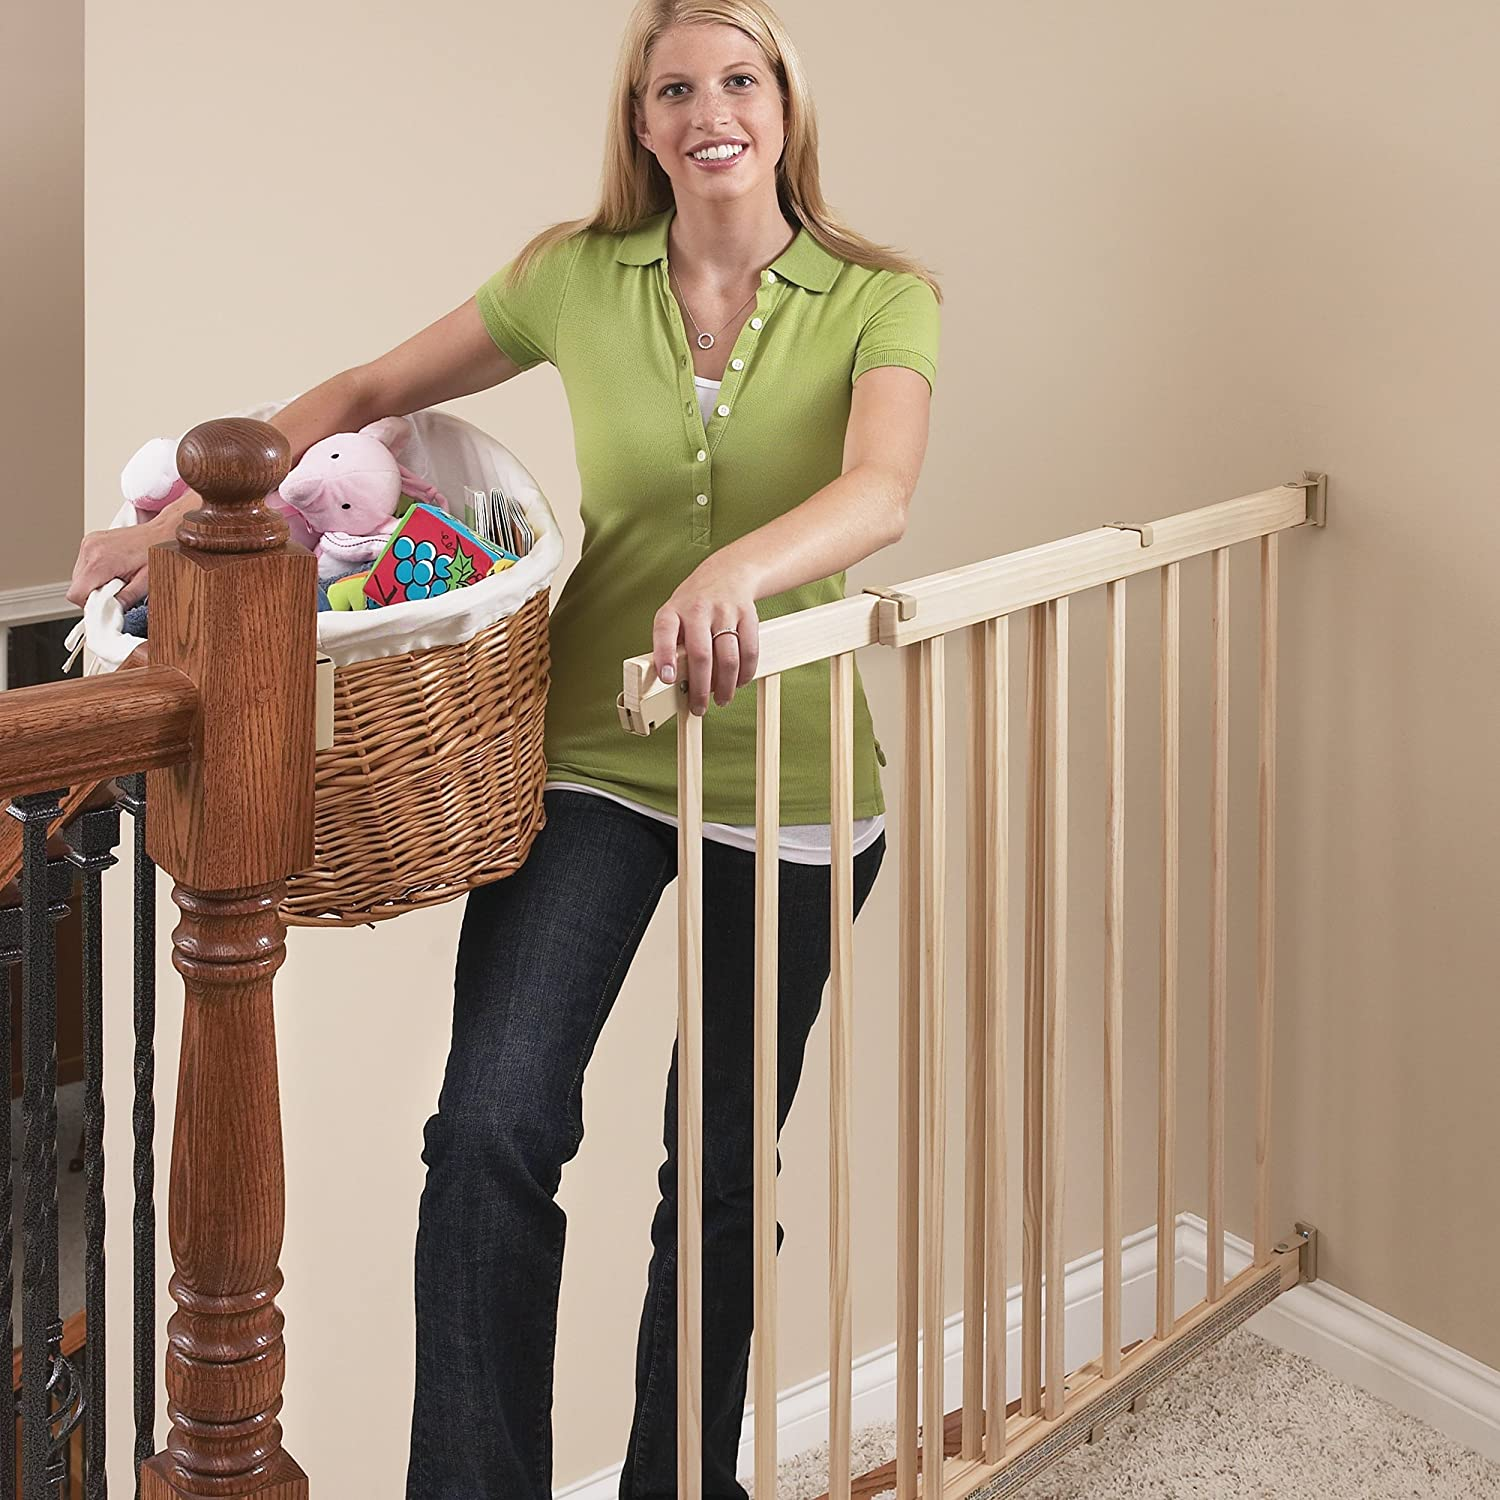 Amazon.com : Evenflo, Top Of Stairs, Extra Tall Gate, Hardware Mounted :  Indoor Safety Gates : Baby